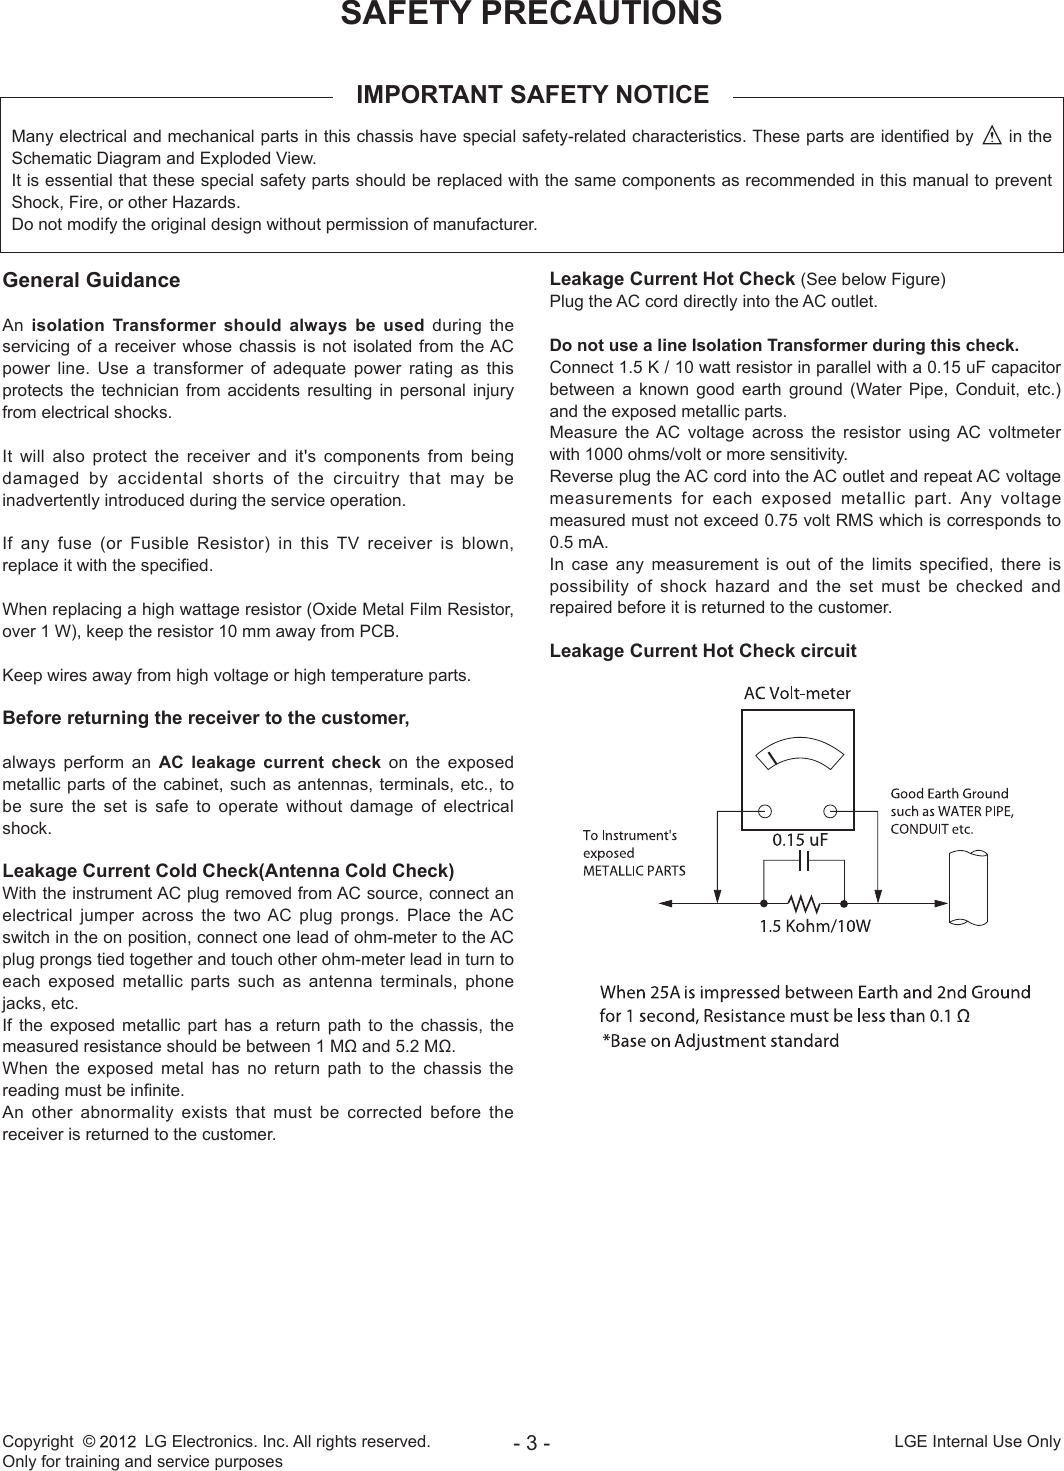 Lg 42Lm760S 760T Zb Users Manual